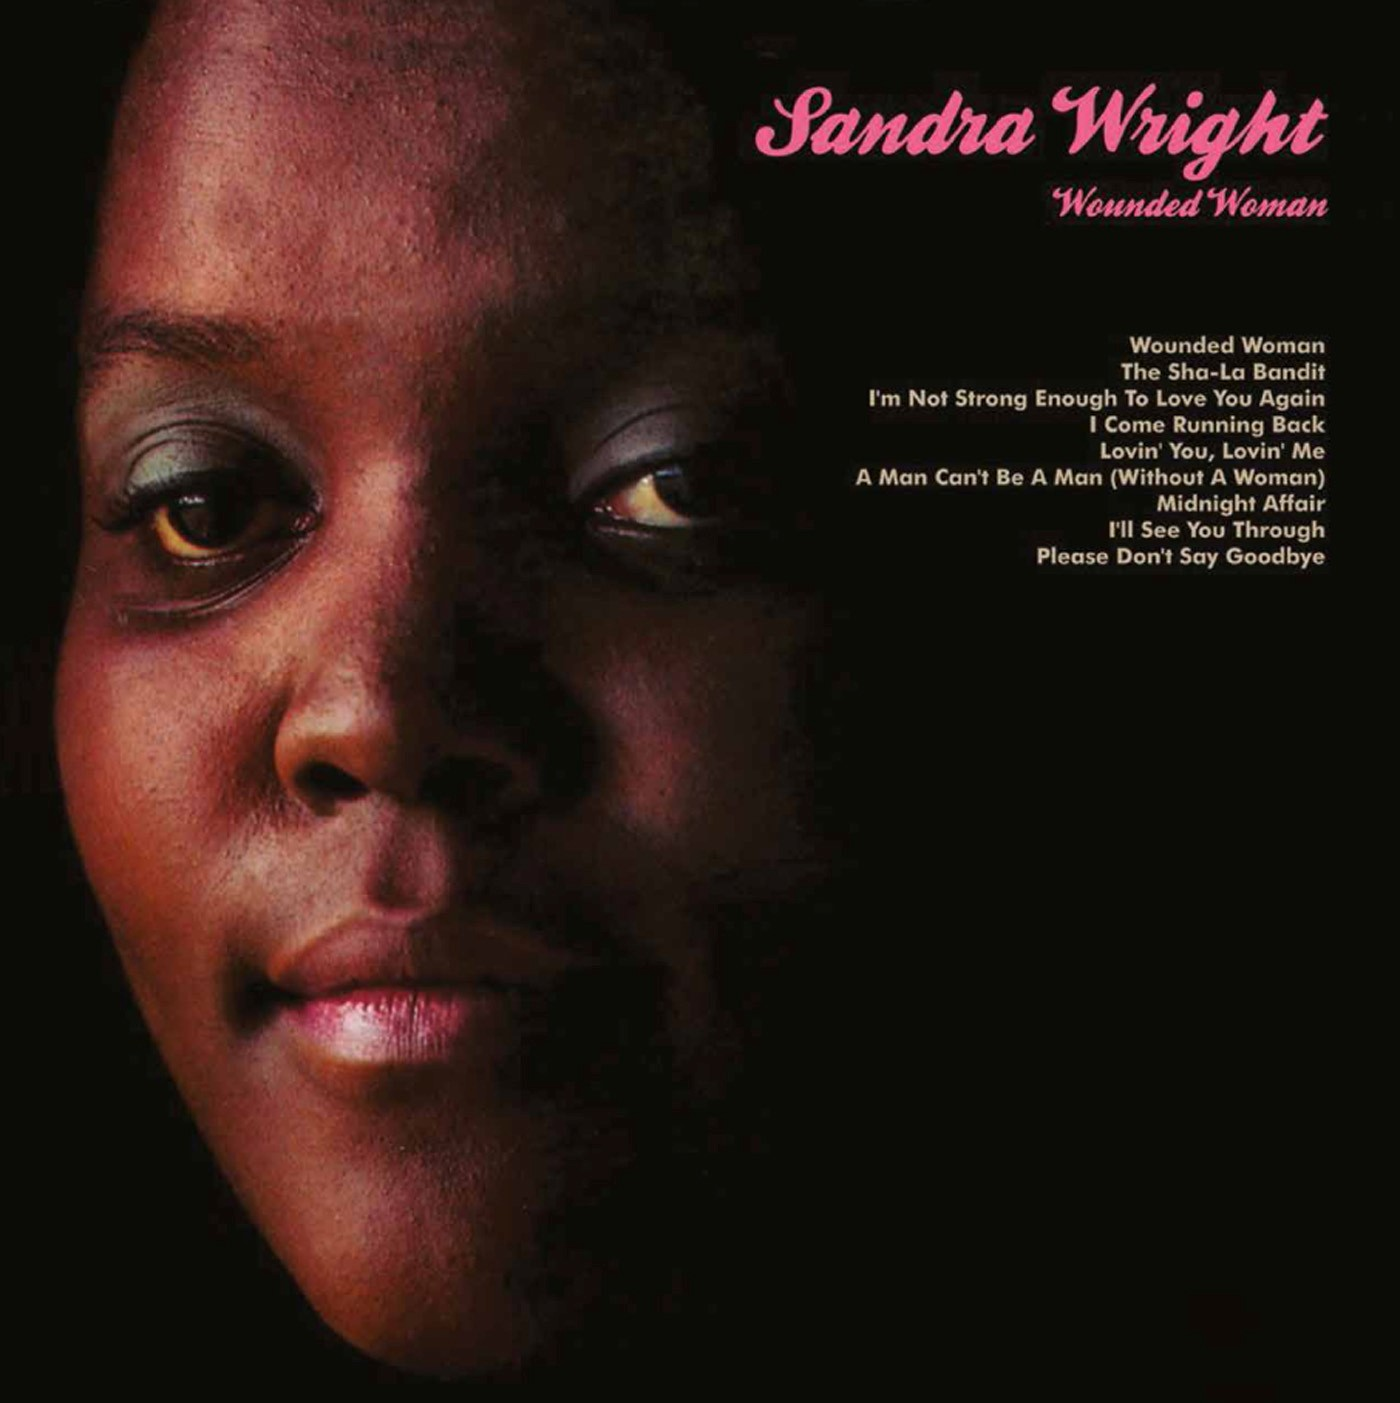 Sandra Wright/WOUNDED WOMAN CD